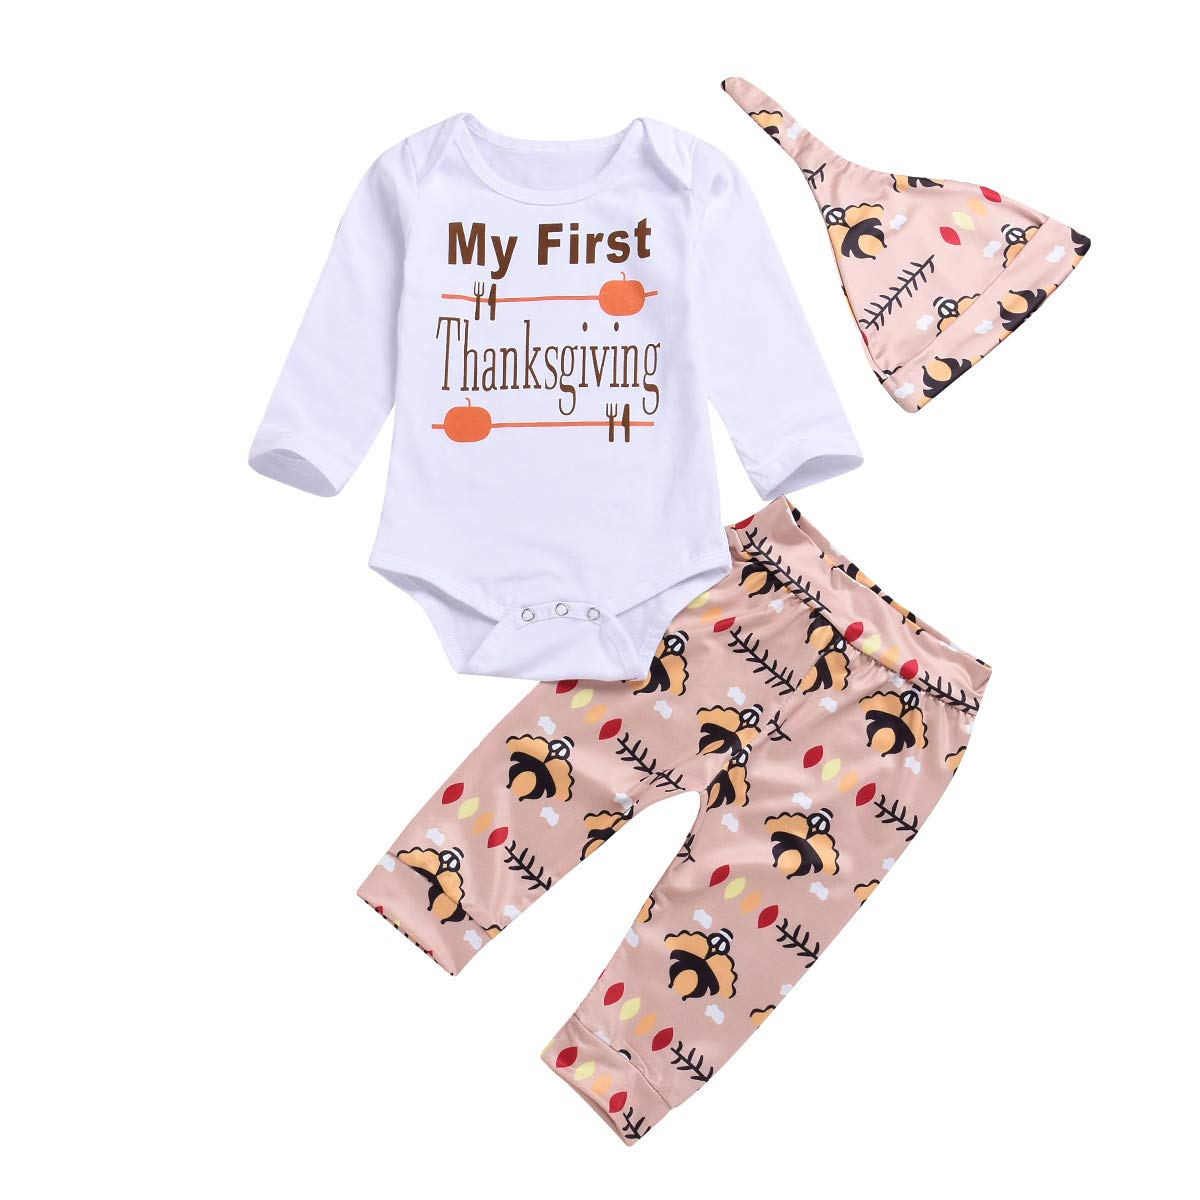 b99ed1929e89 Soft and comfortable baby boys girl outfits, which is good for skin health.  Design: